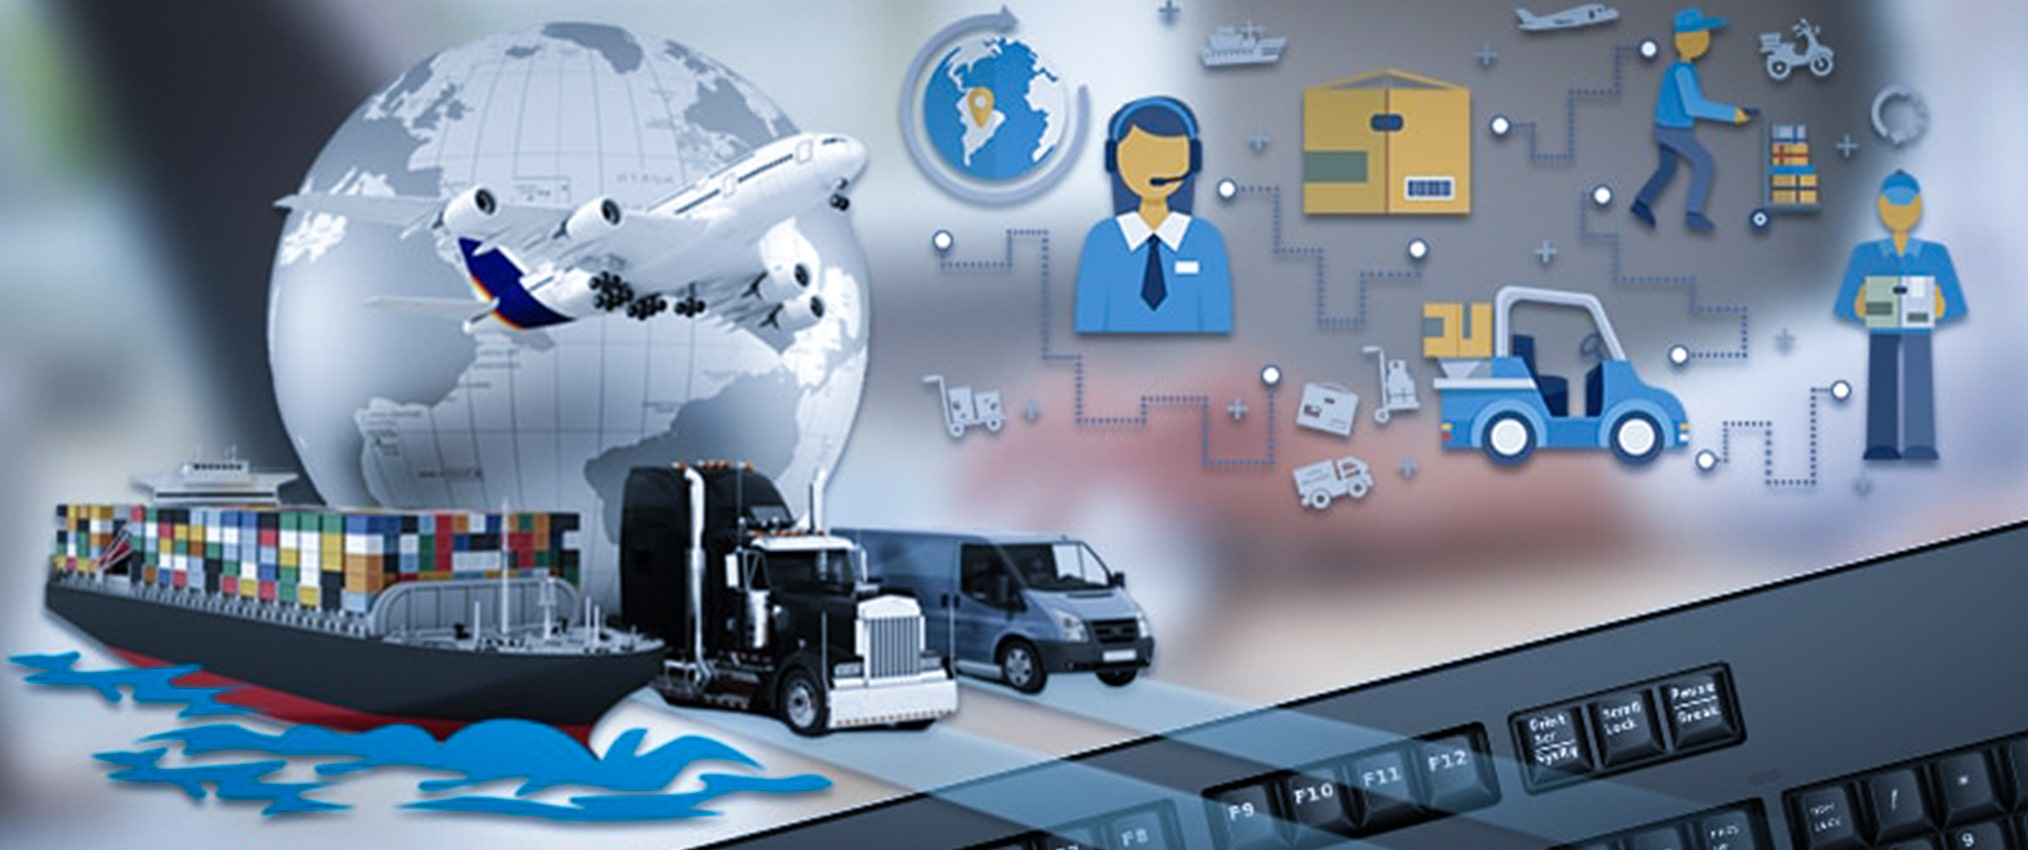 outsource-logistic-back-office-services-to-offshore-bpo-company